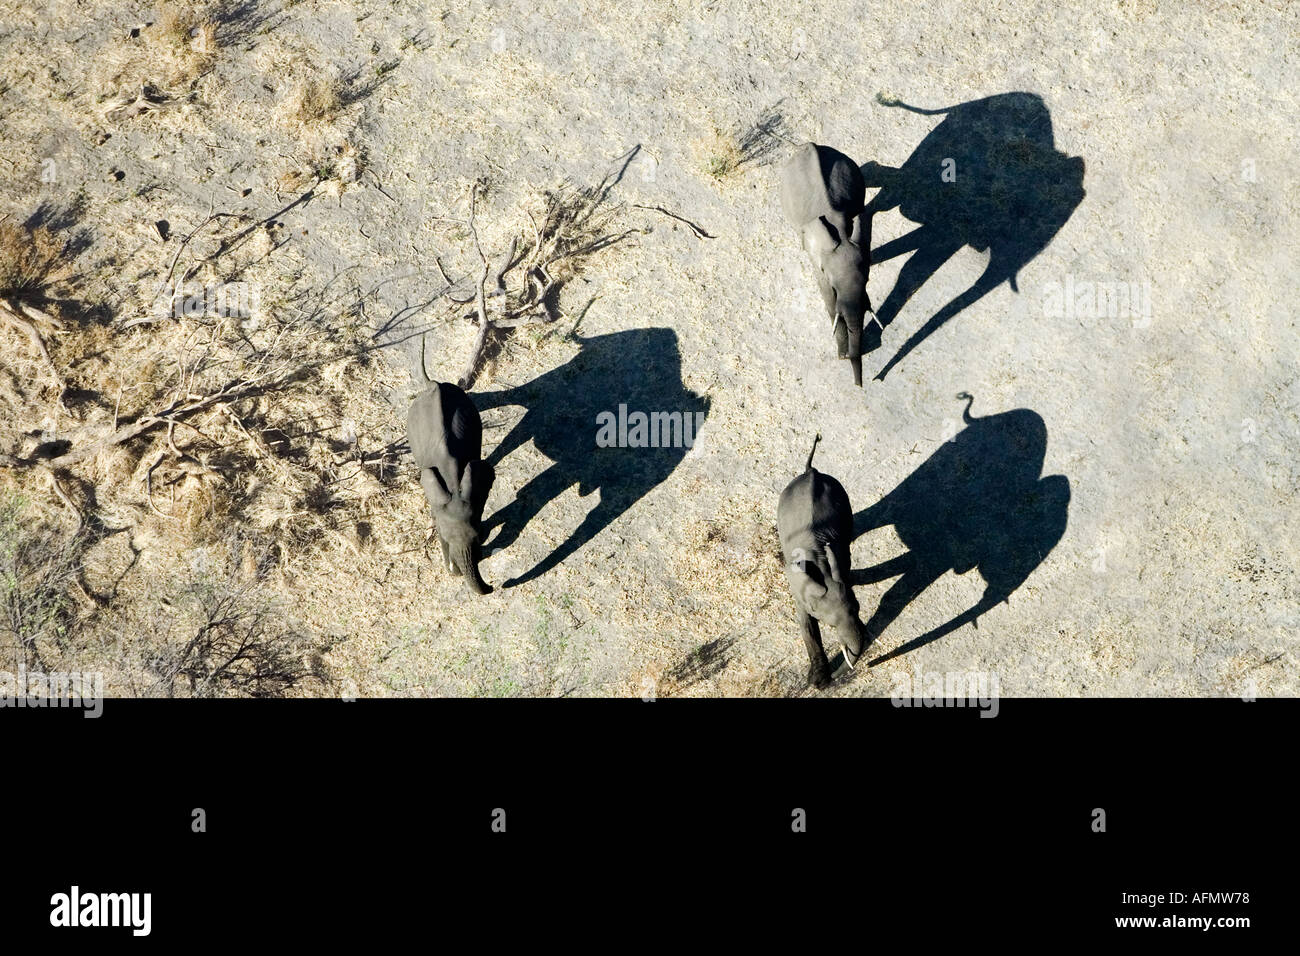 Aerial view of elephants and shadows Amboseli National Park Kenya - Stock Image